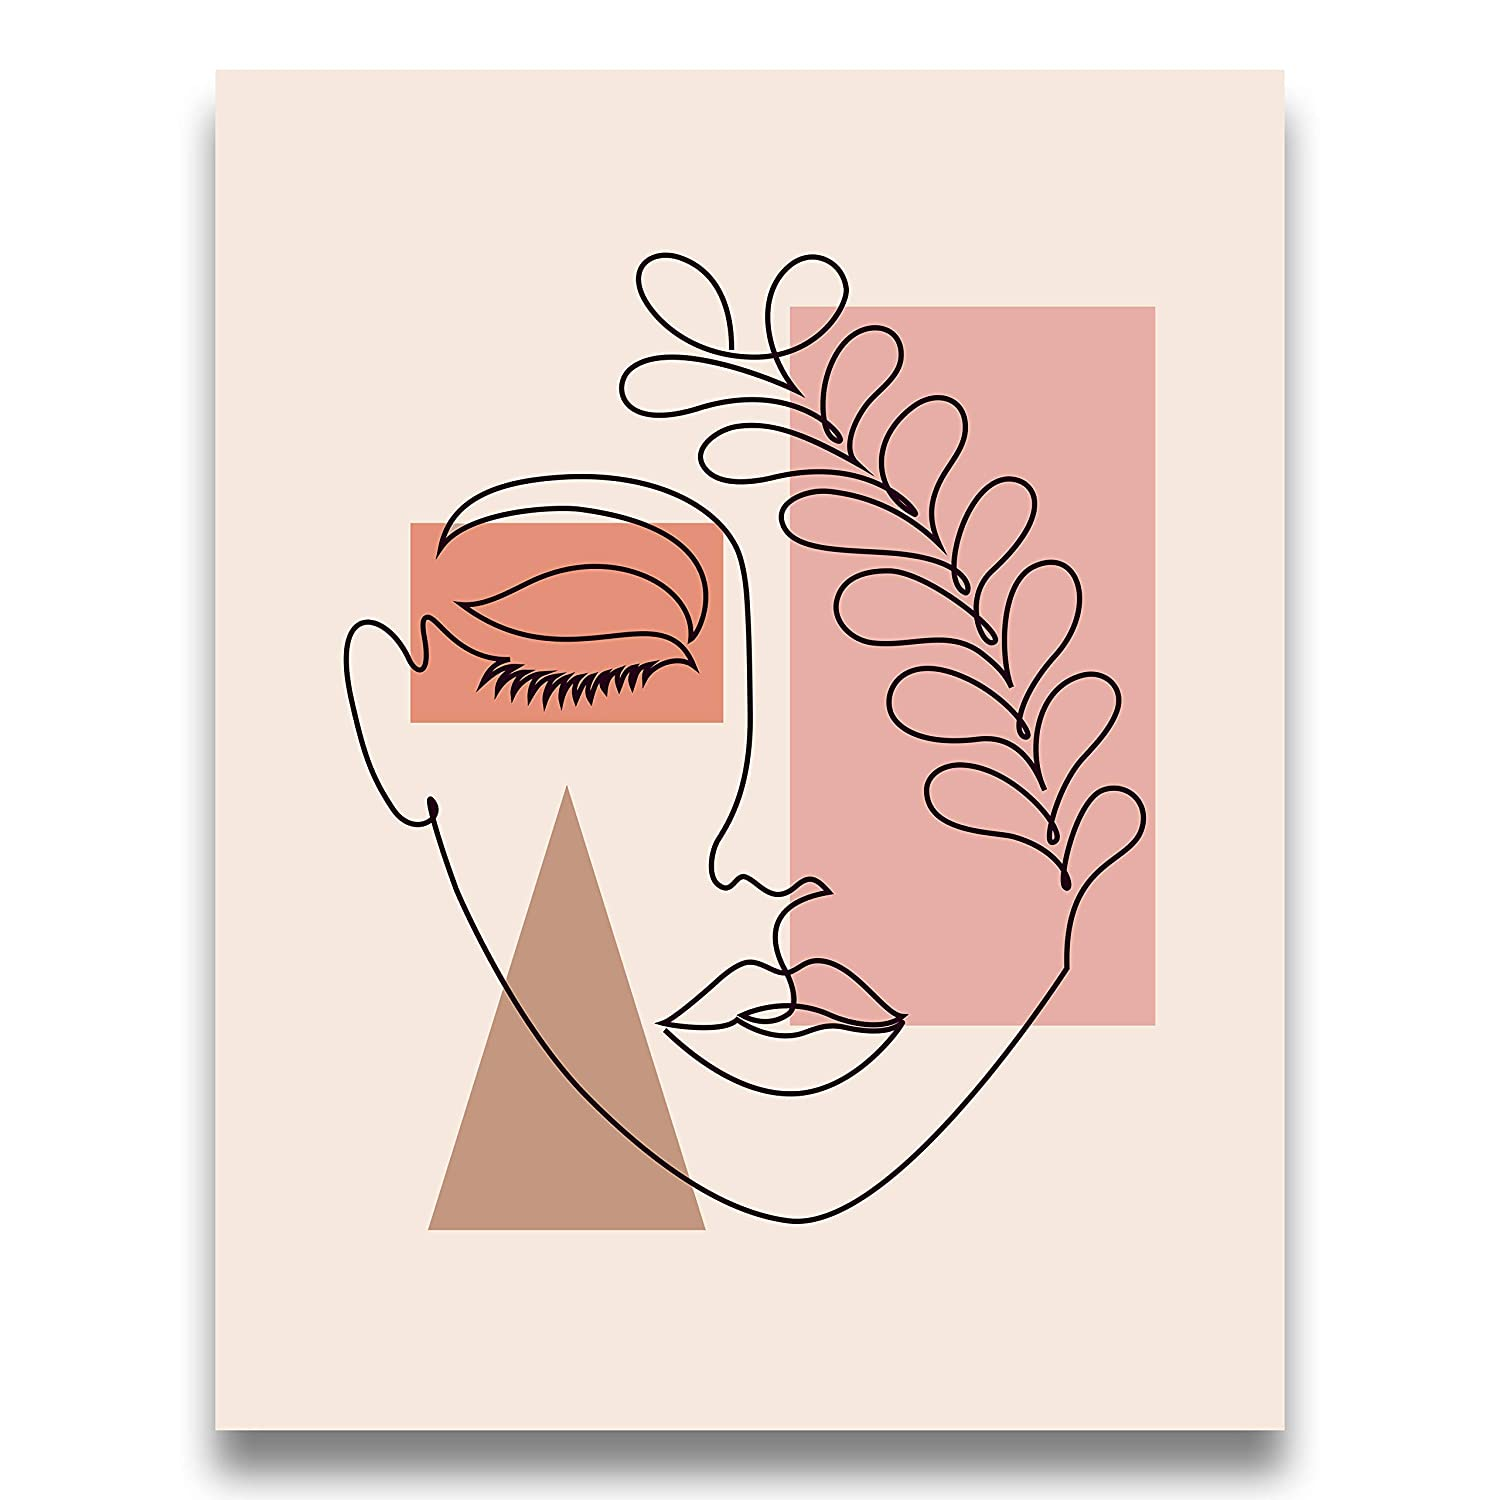 Pink, Tan, Coral, Brown Abstract Botanical One Line Woman Wall Art | Neutral Beige 11x14 UNFRAMED Print - Lovely Female Face Decor